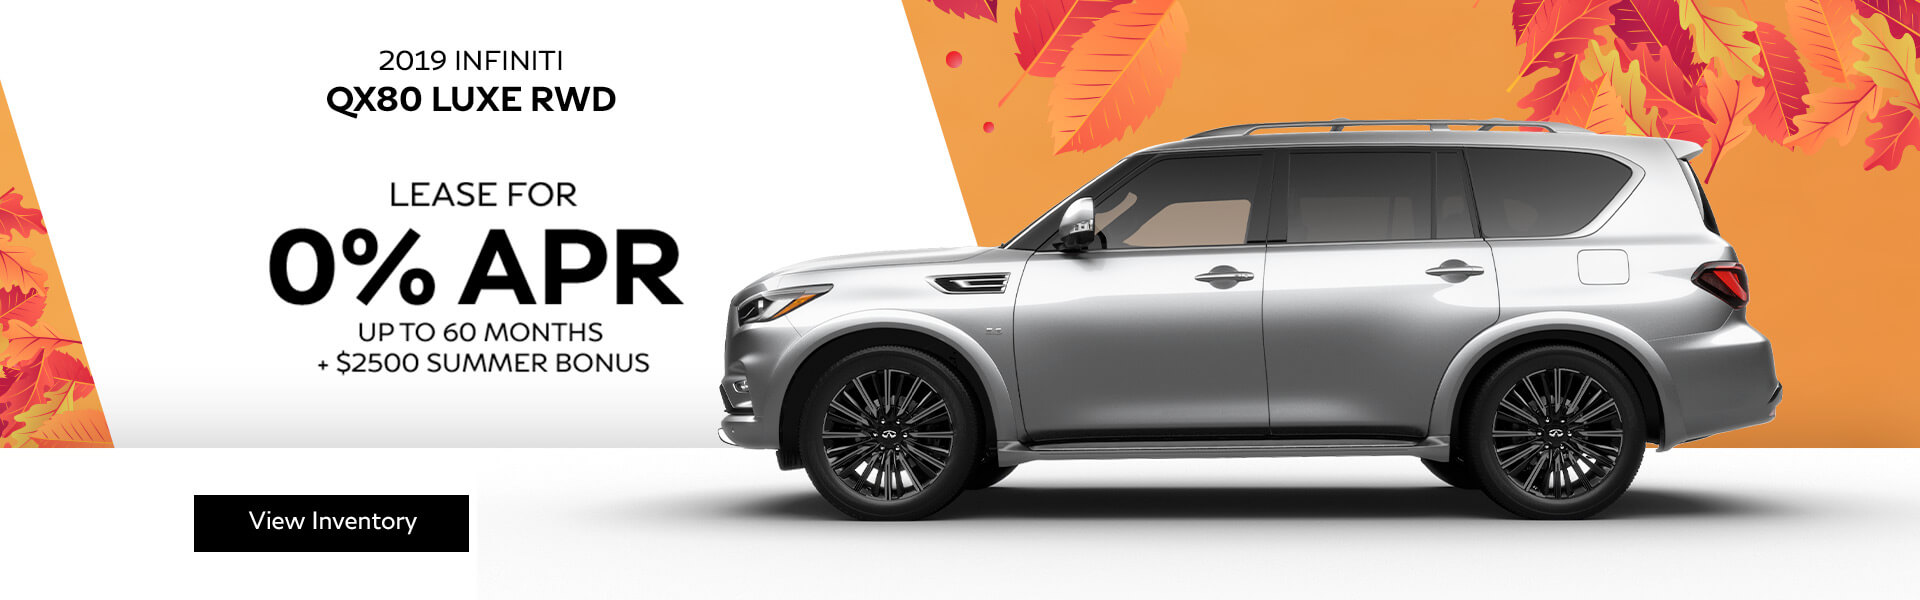 QX80 LUXE - Finance for 0% APR